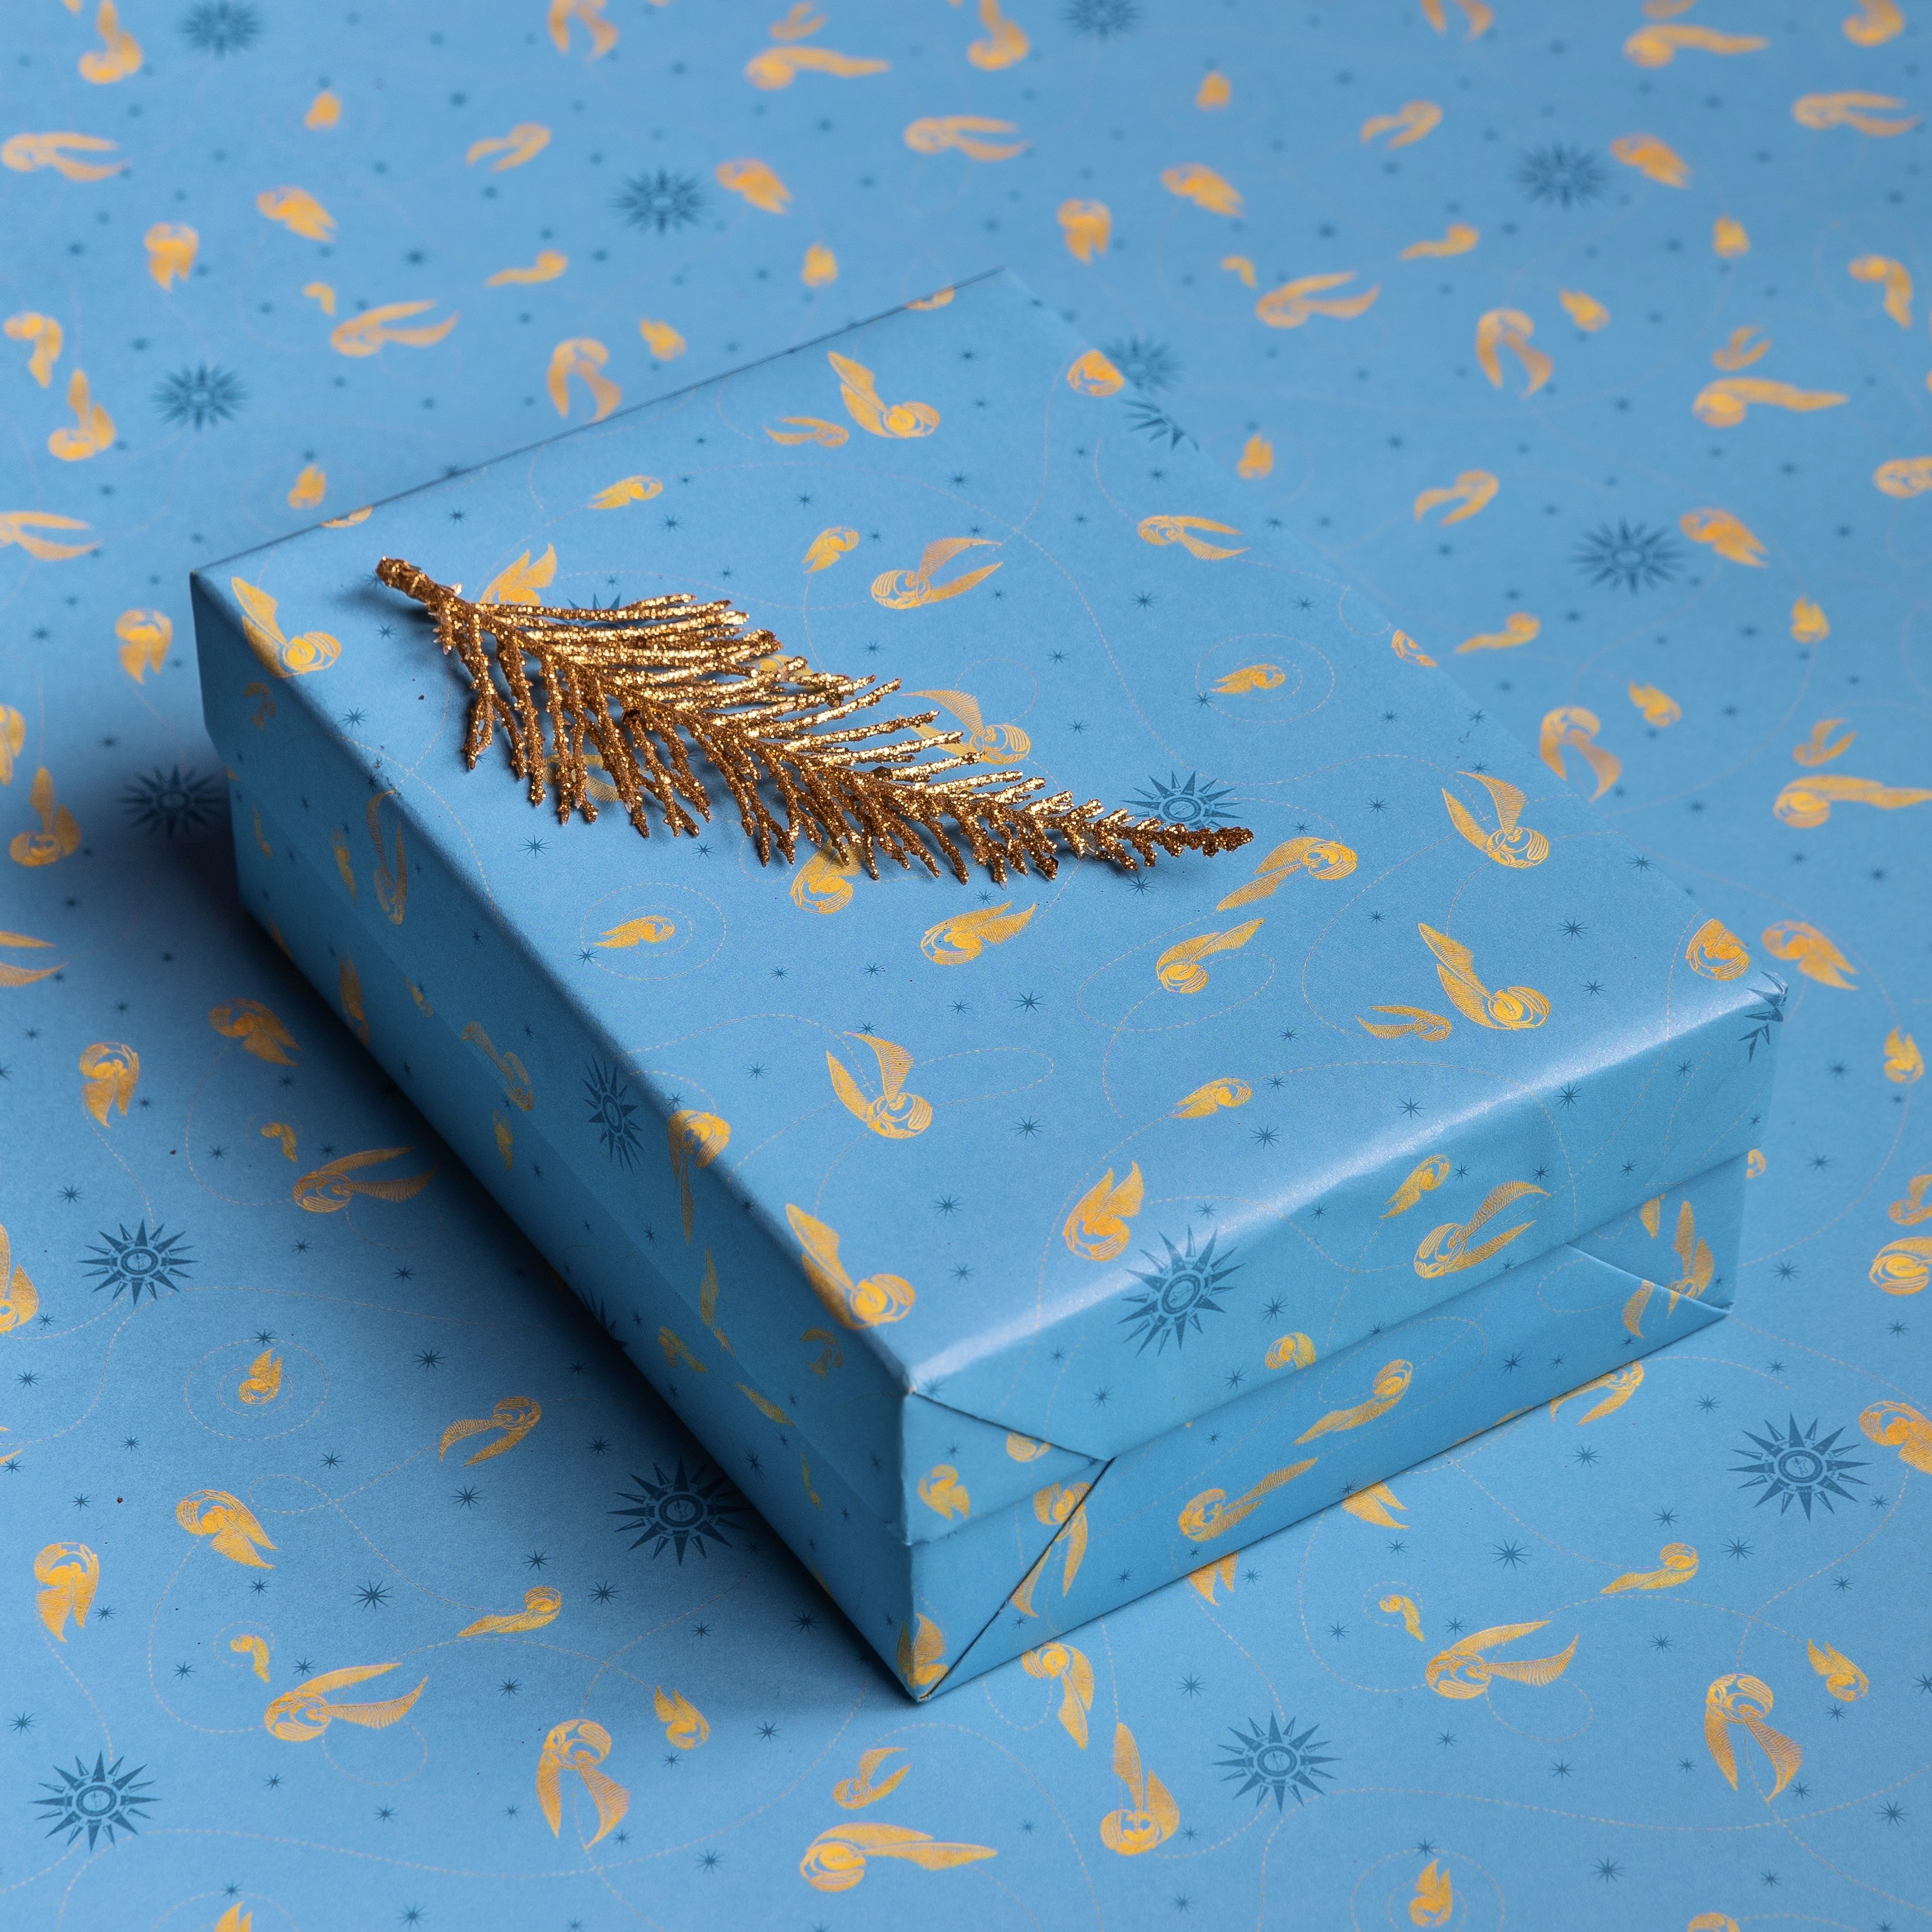 If Quidditch is your favorite thing about the wizarding world, then this gift wrap is the choice for you.